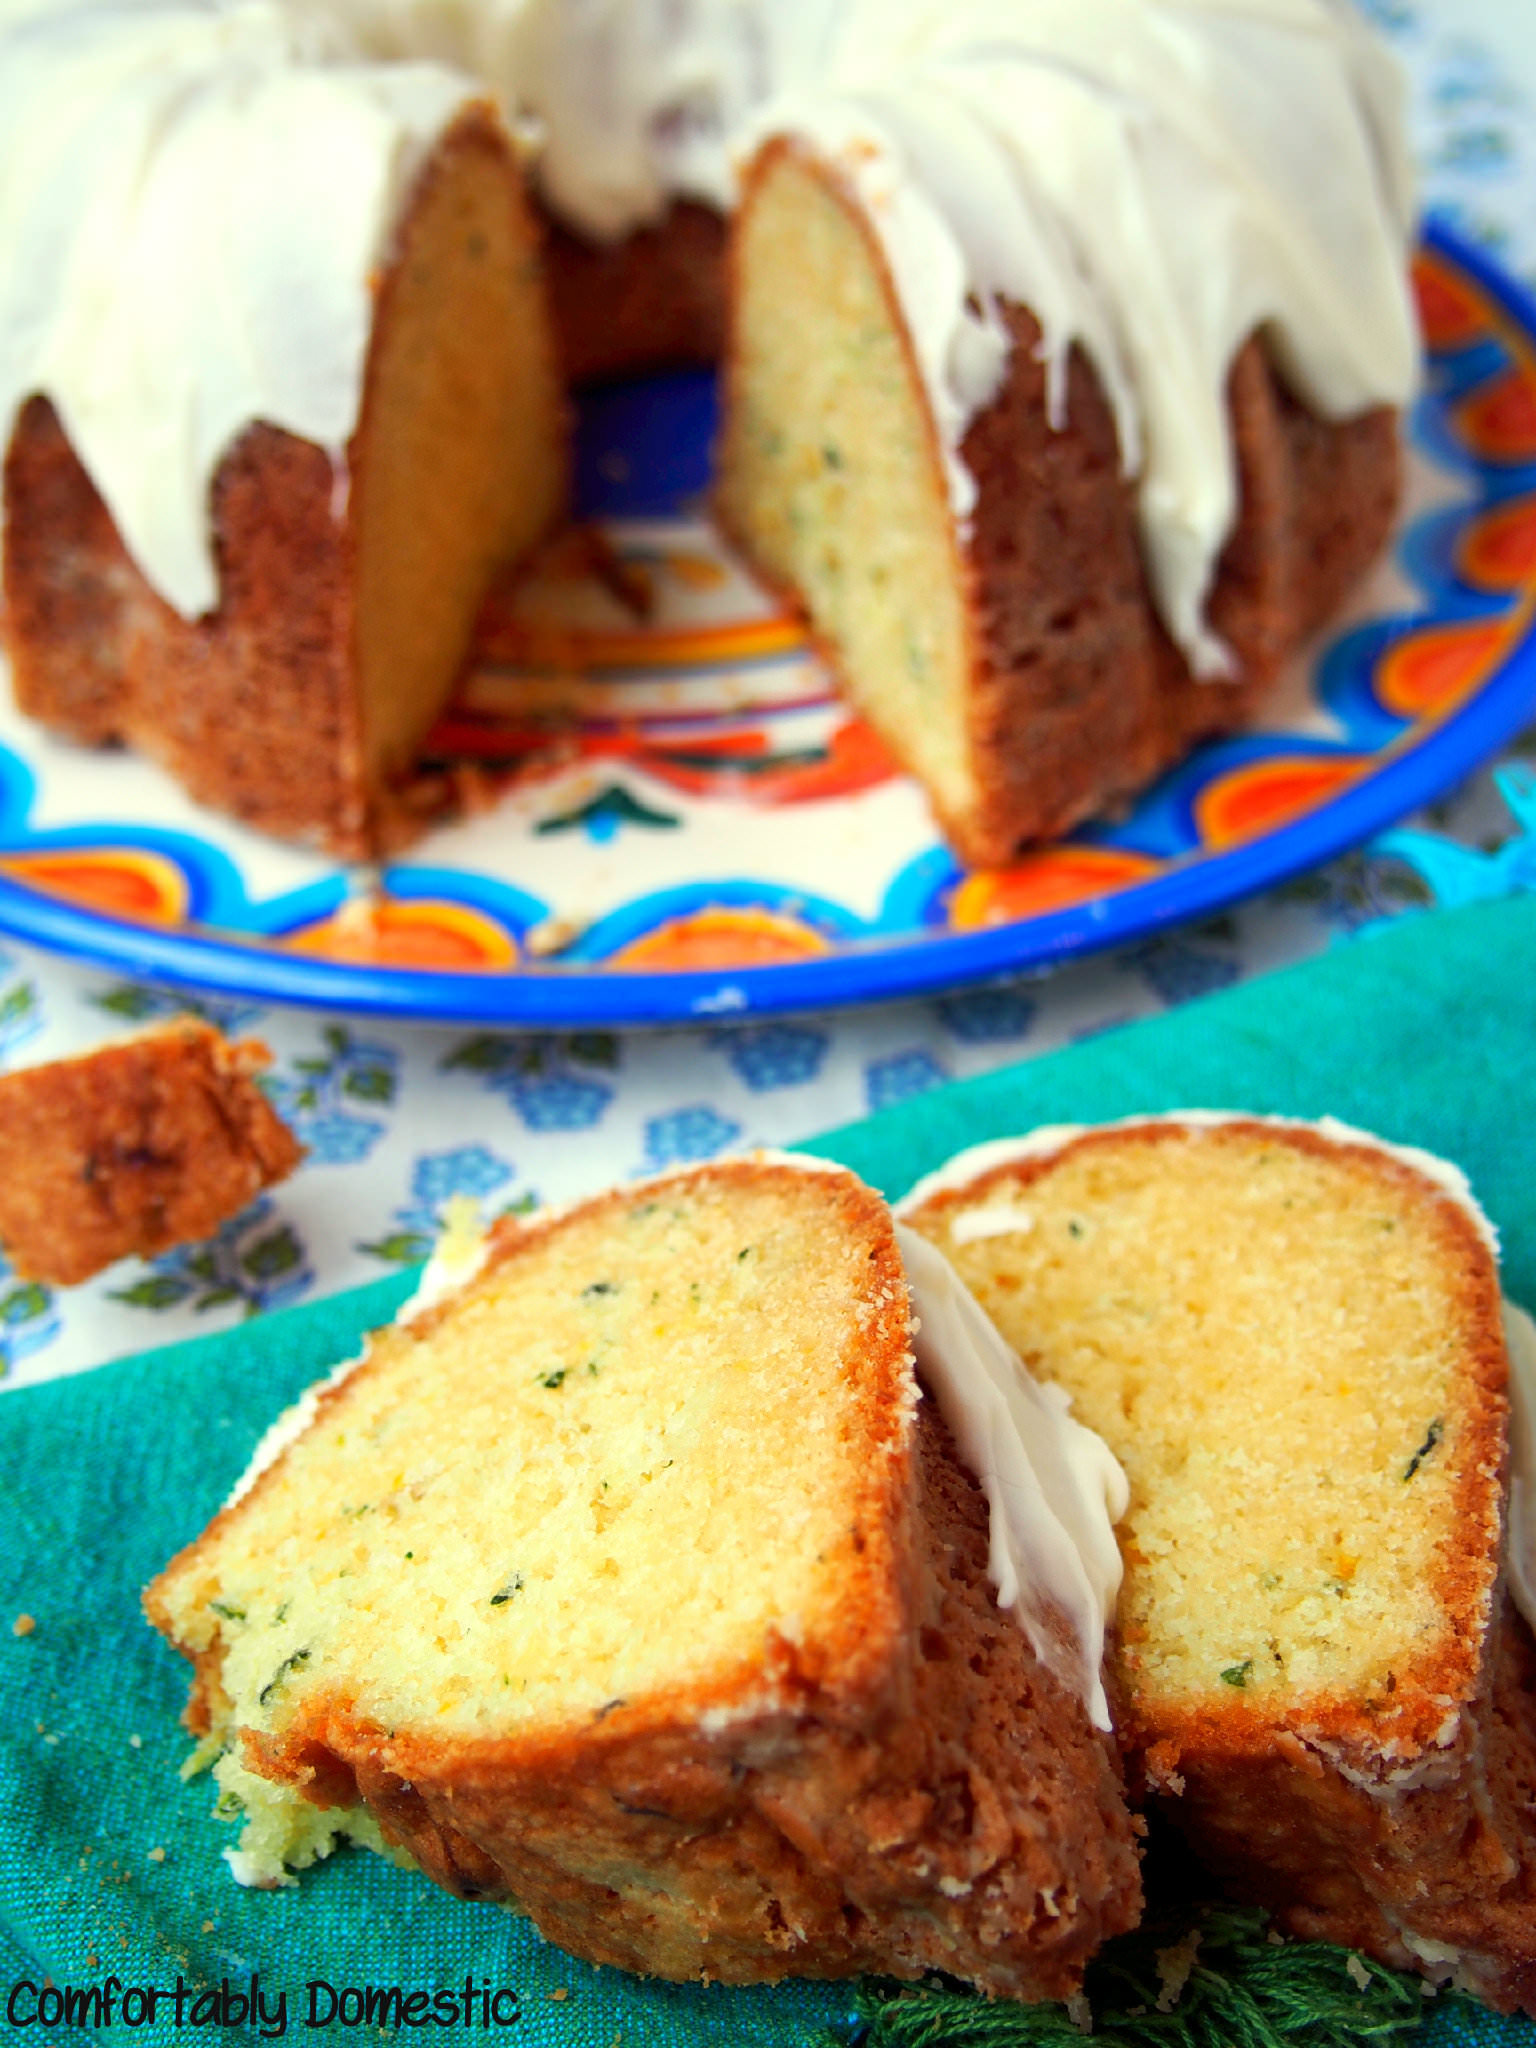 Zucchini Bundt Cake with Lemon Cream Glaze | Comfortably Domestic